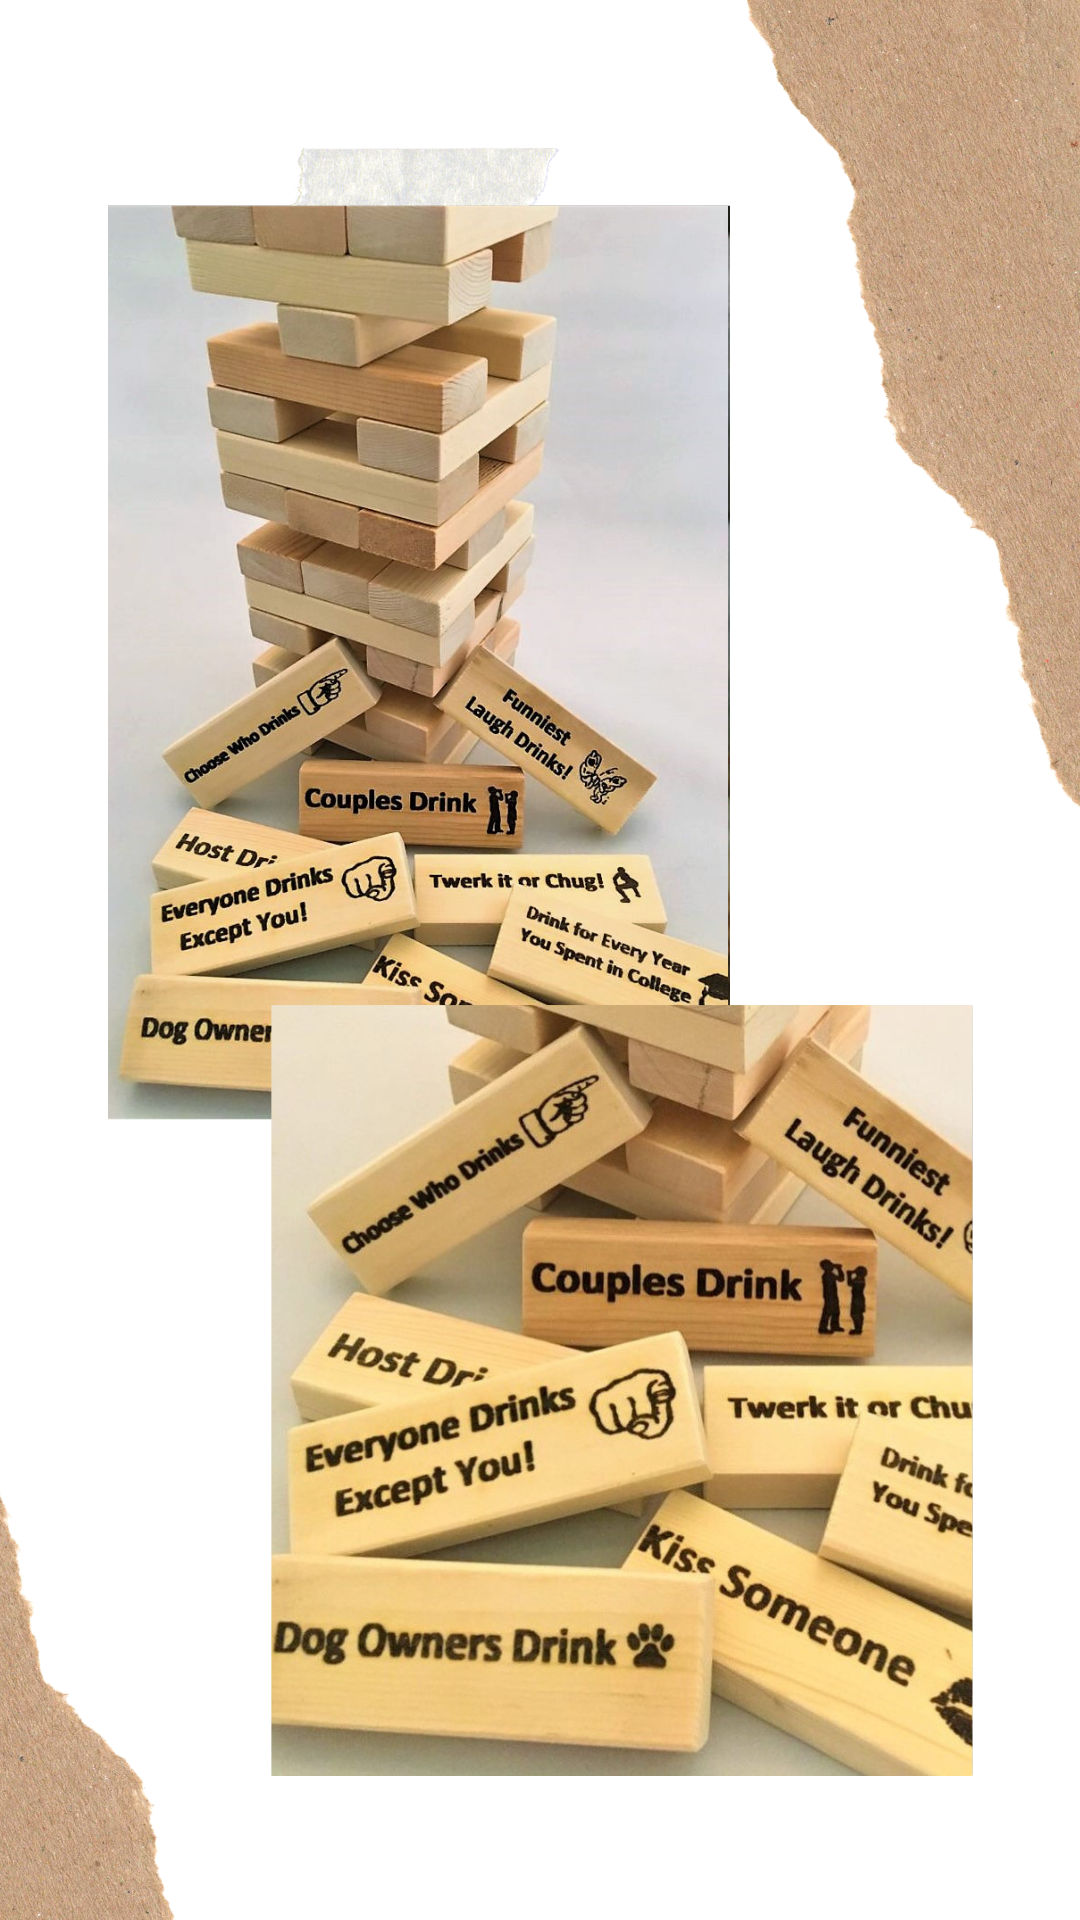 Custom made Jenga games can be personalized for your next